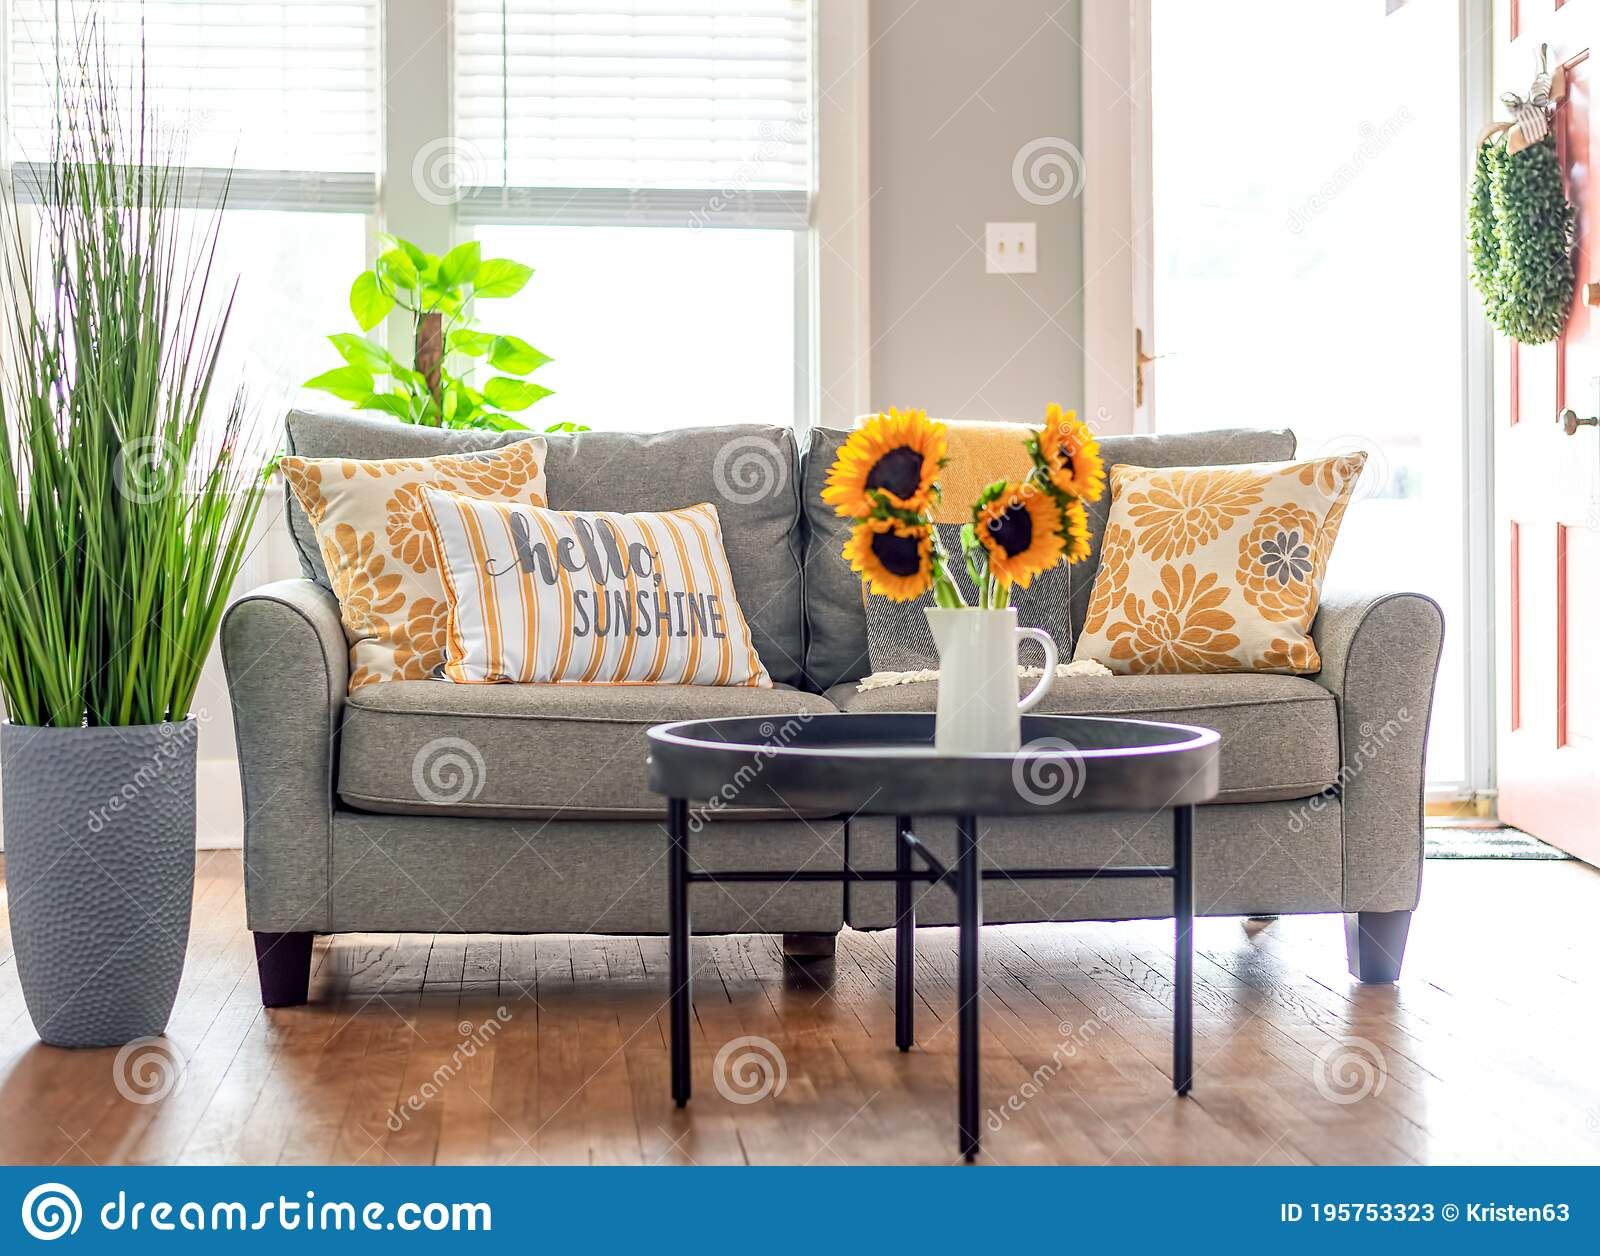 Gray And Yellow Living Room Decor In Bright Sunlight Stock Image Image Of Accent Cute 195753323